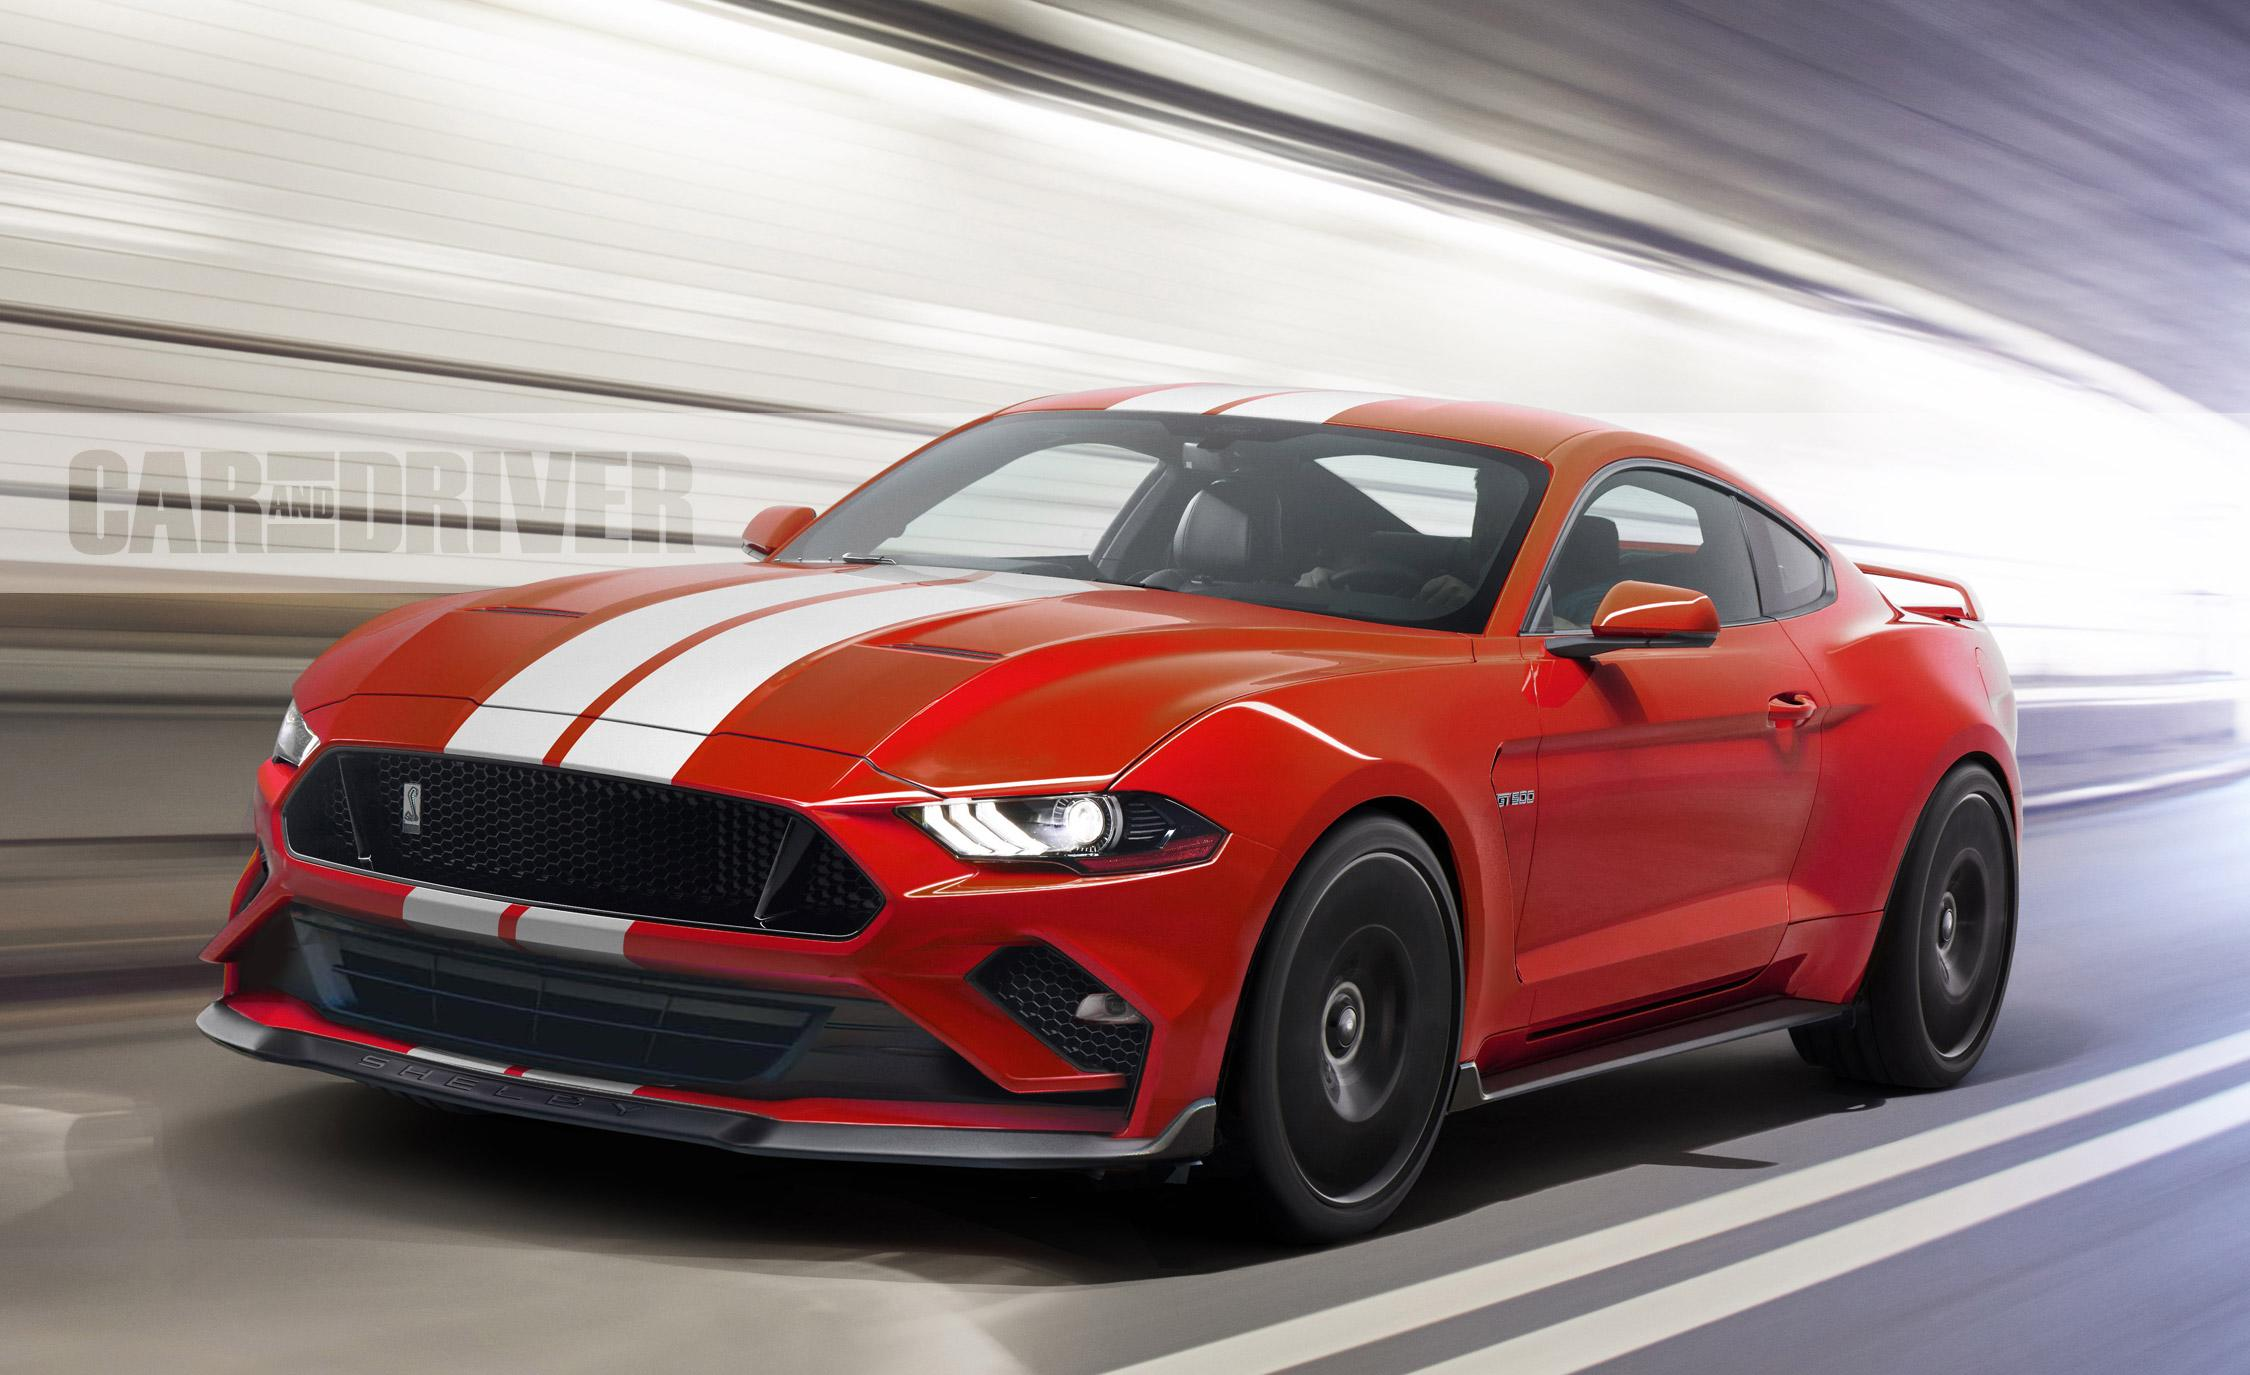 2018 ford mustang shelby gt500 a legend reborn again - Mustang shelby ...